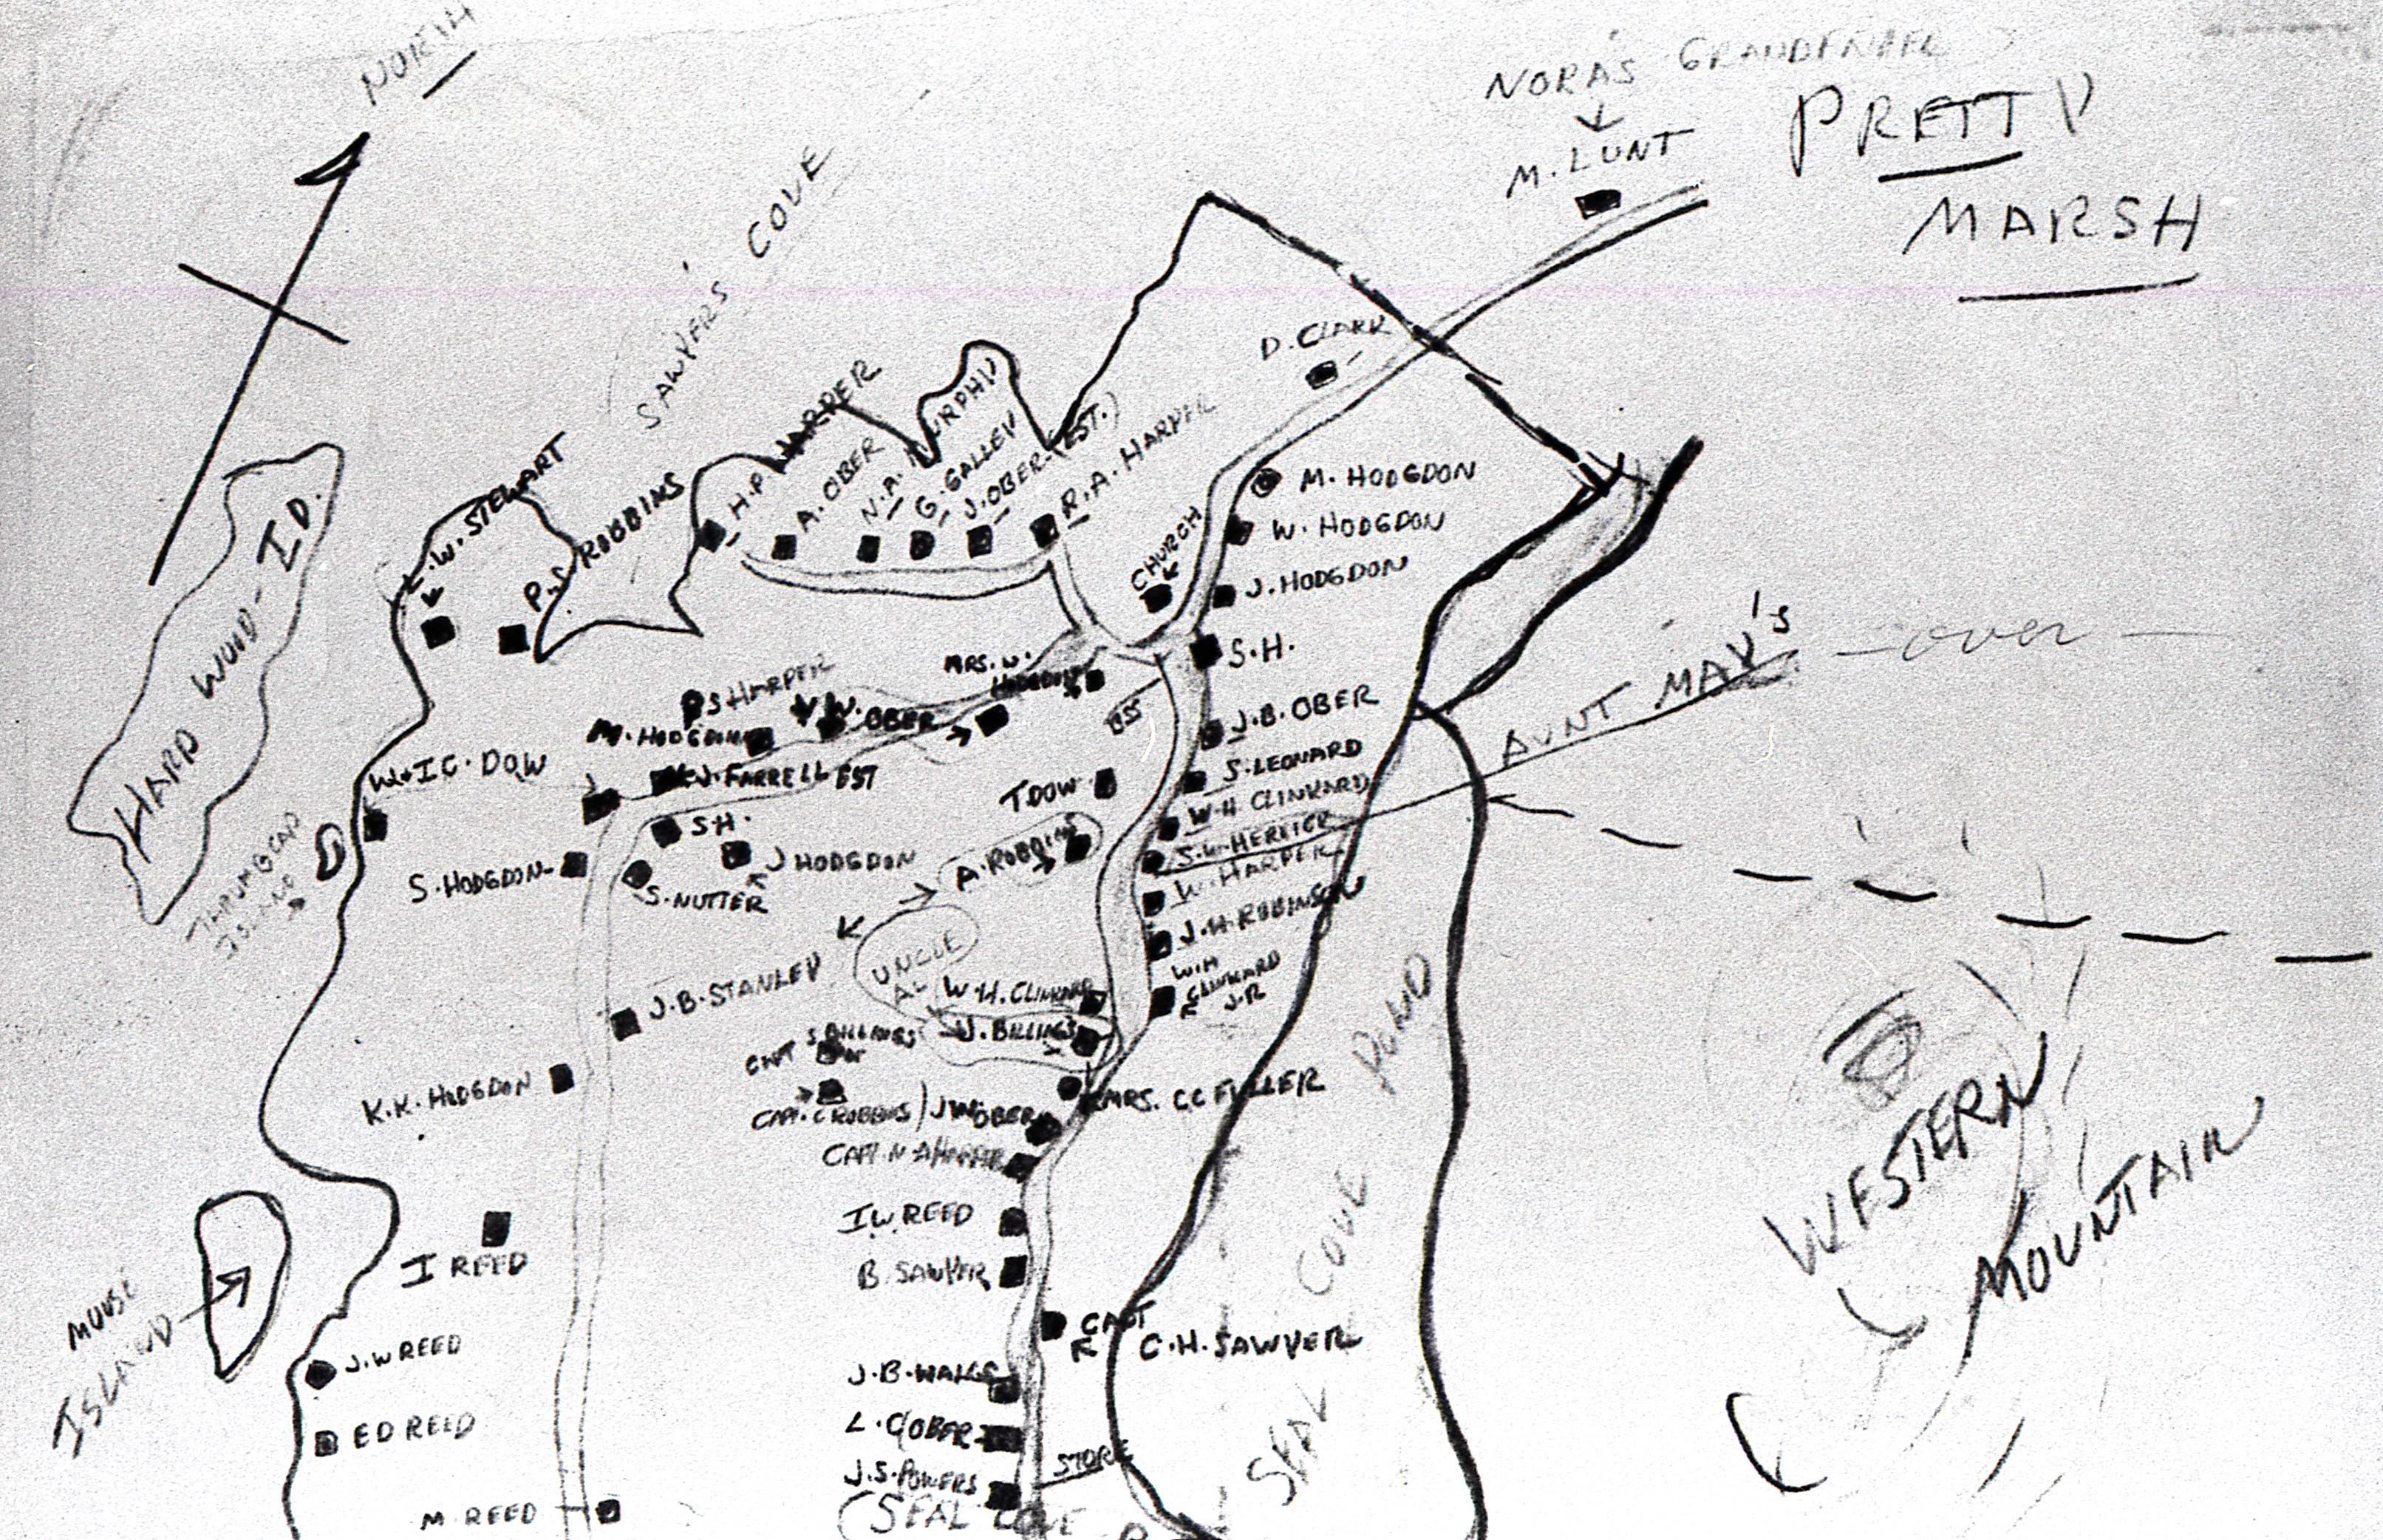 Hand Drawn Map of the Area of the Village of Center and Seal Cove Pond